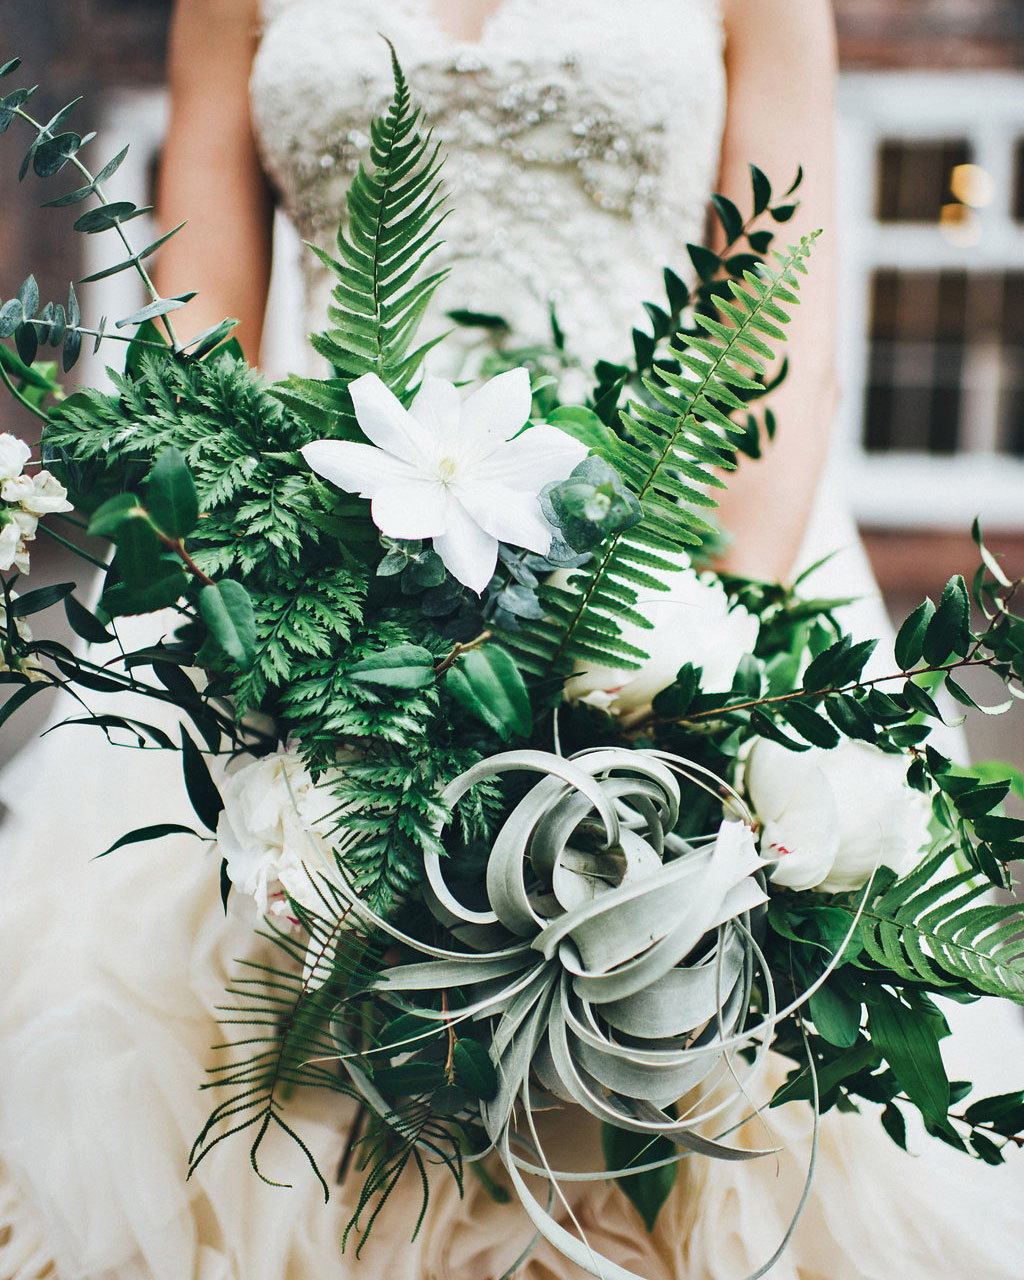 moira-dustin-real-wedding-bridal-bouquet.jpg